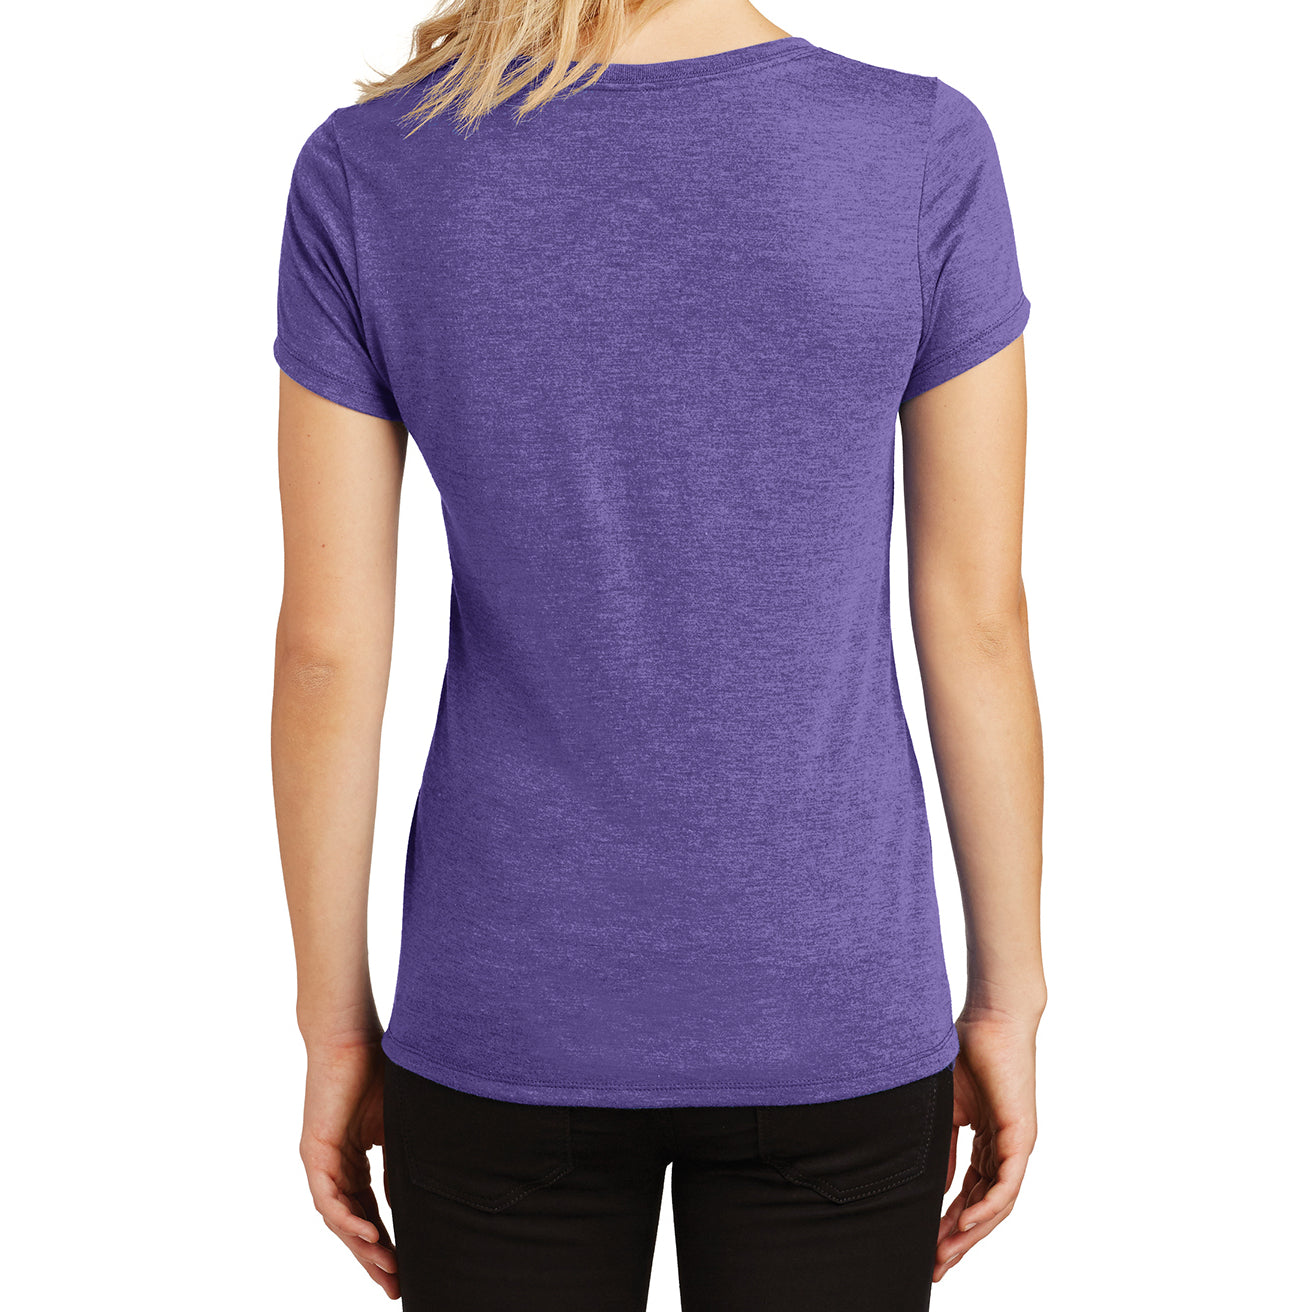 Women's Perfect Tri V-Neck Tee - Purple Frost - Back